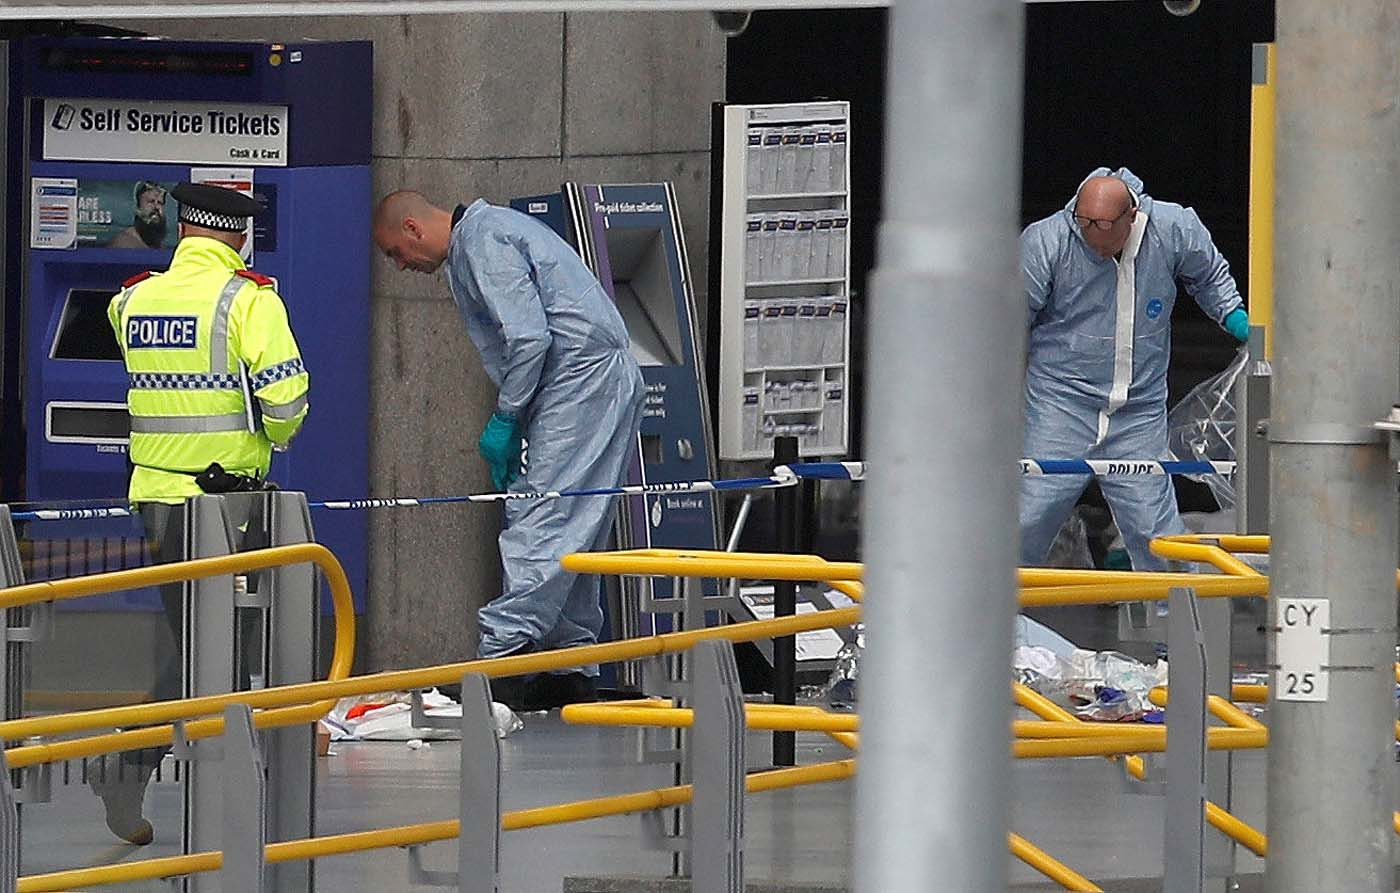 Forensics investigators work at the Manchester Arena in Manchester, Britain May 23, 2017. REUTERS/Darren Staples